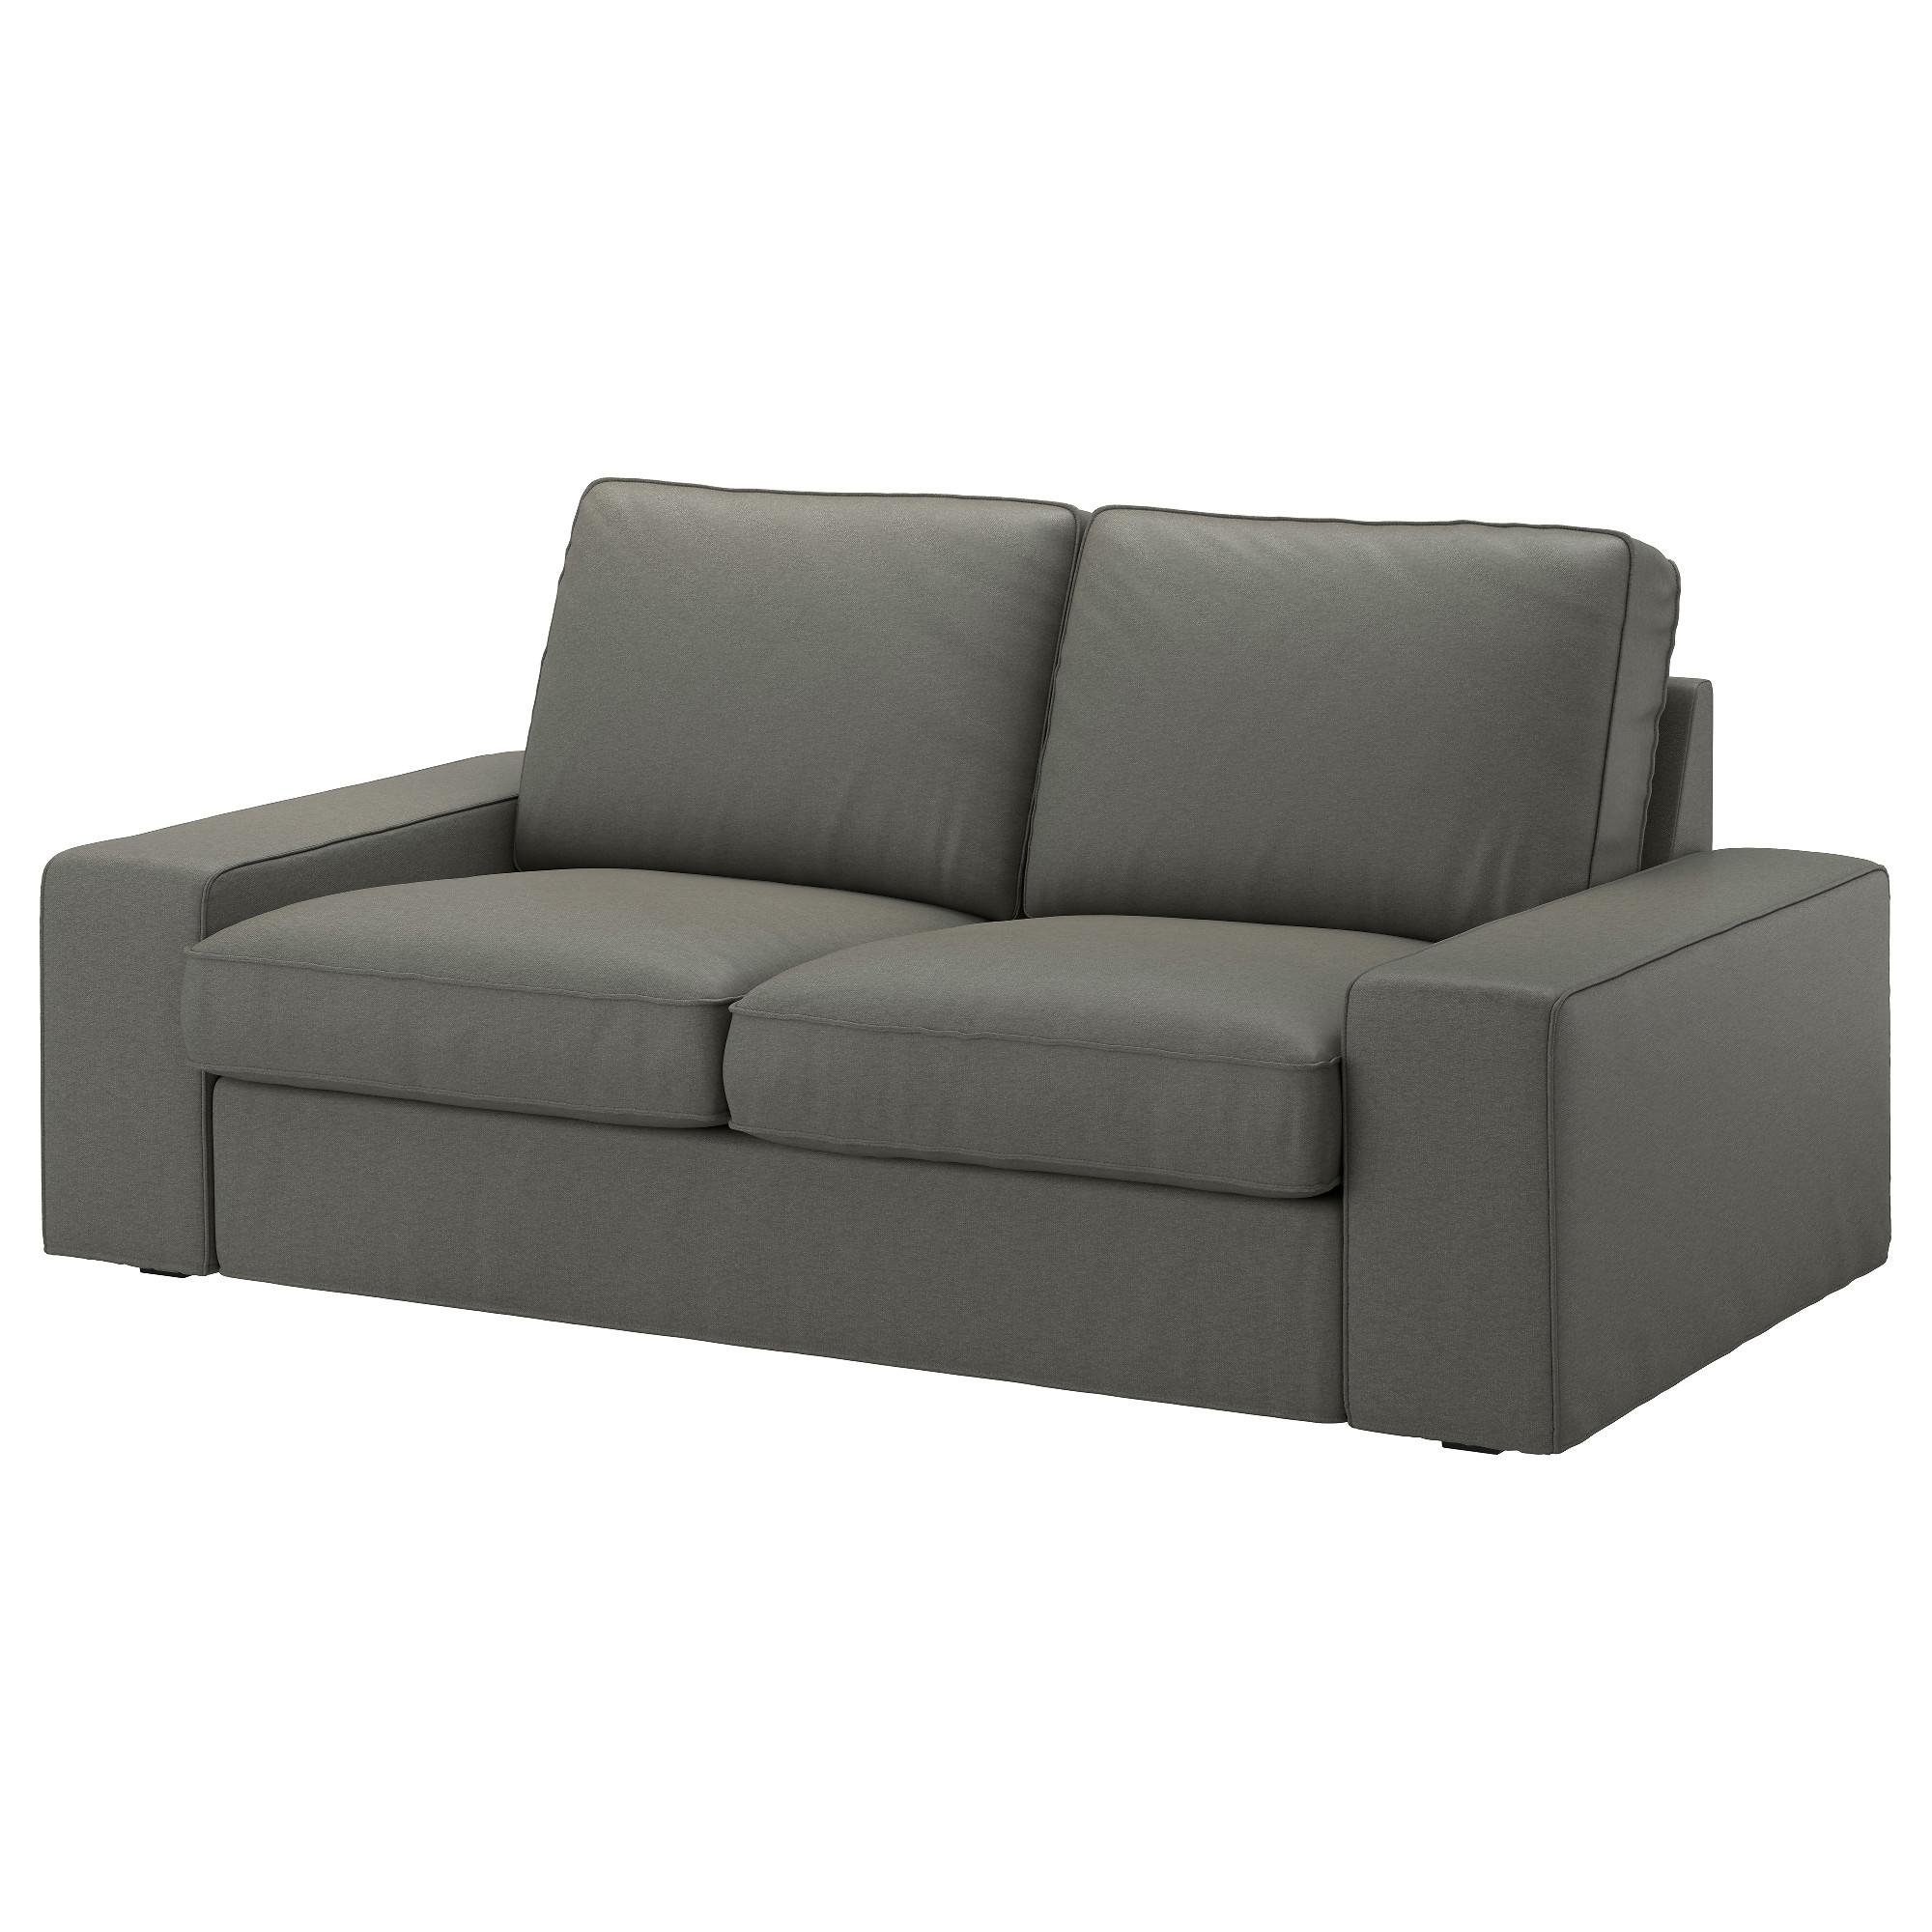 Kivik Two Seat Sofa Borred Grey Green – Ikea In Ikea Two Seater Sofas (View 6 of 20)